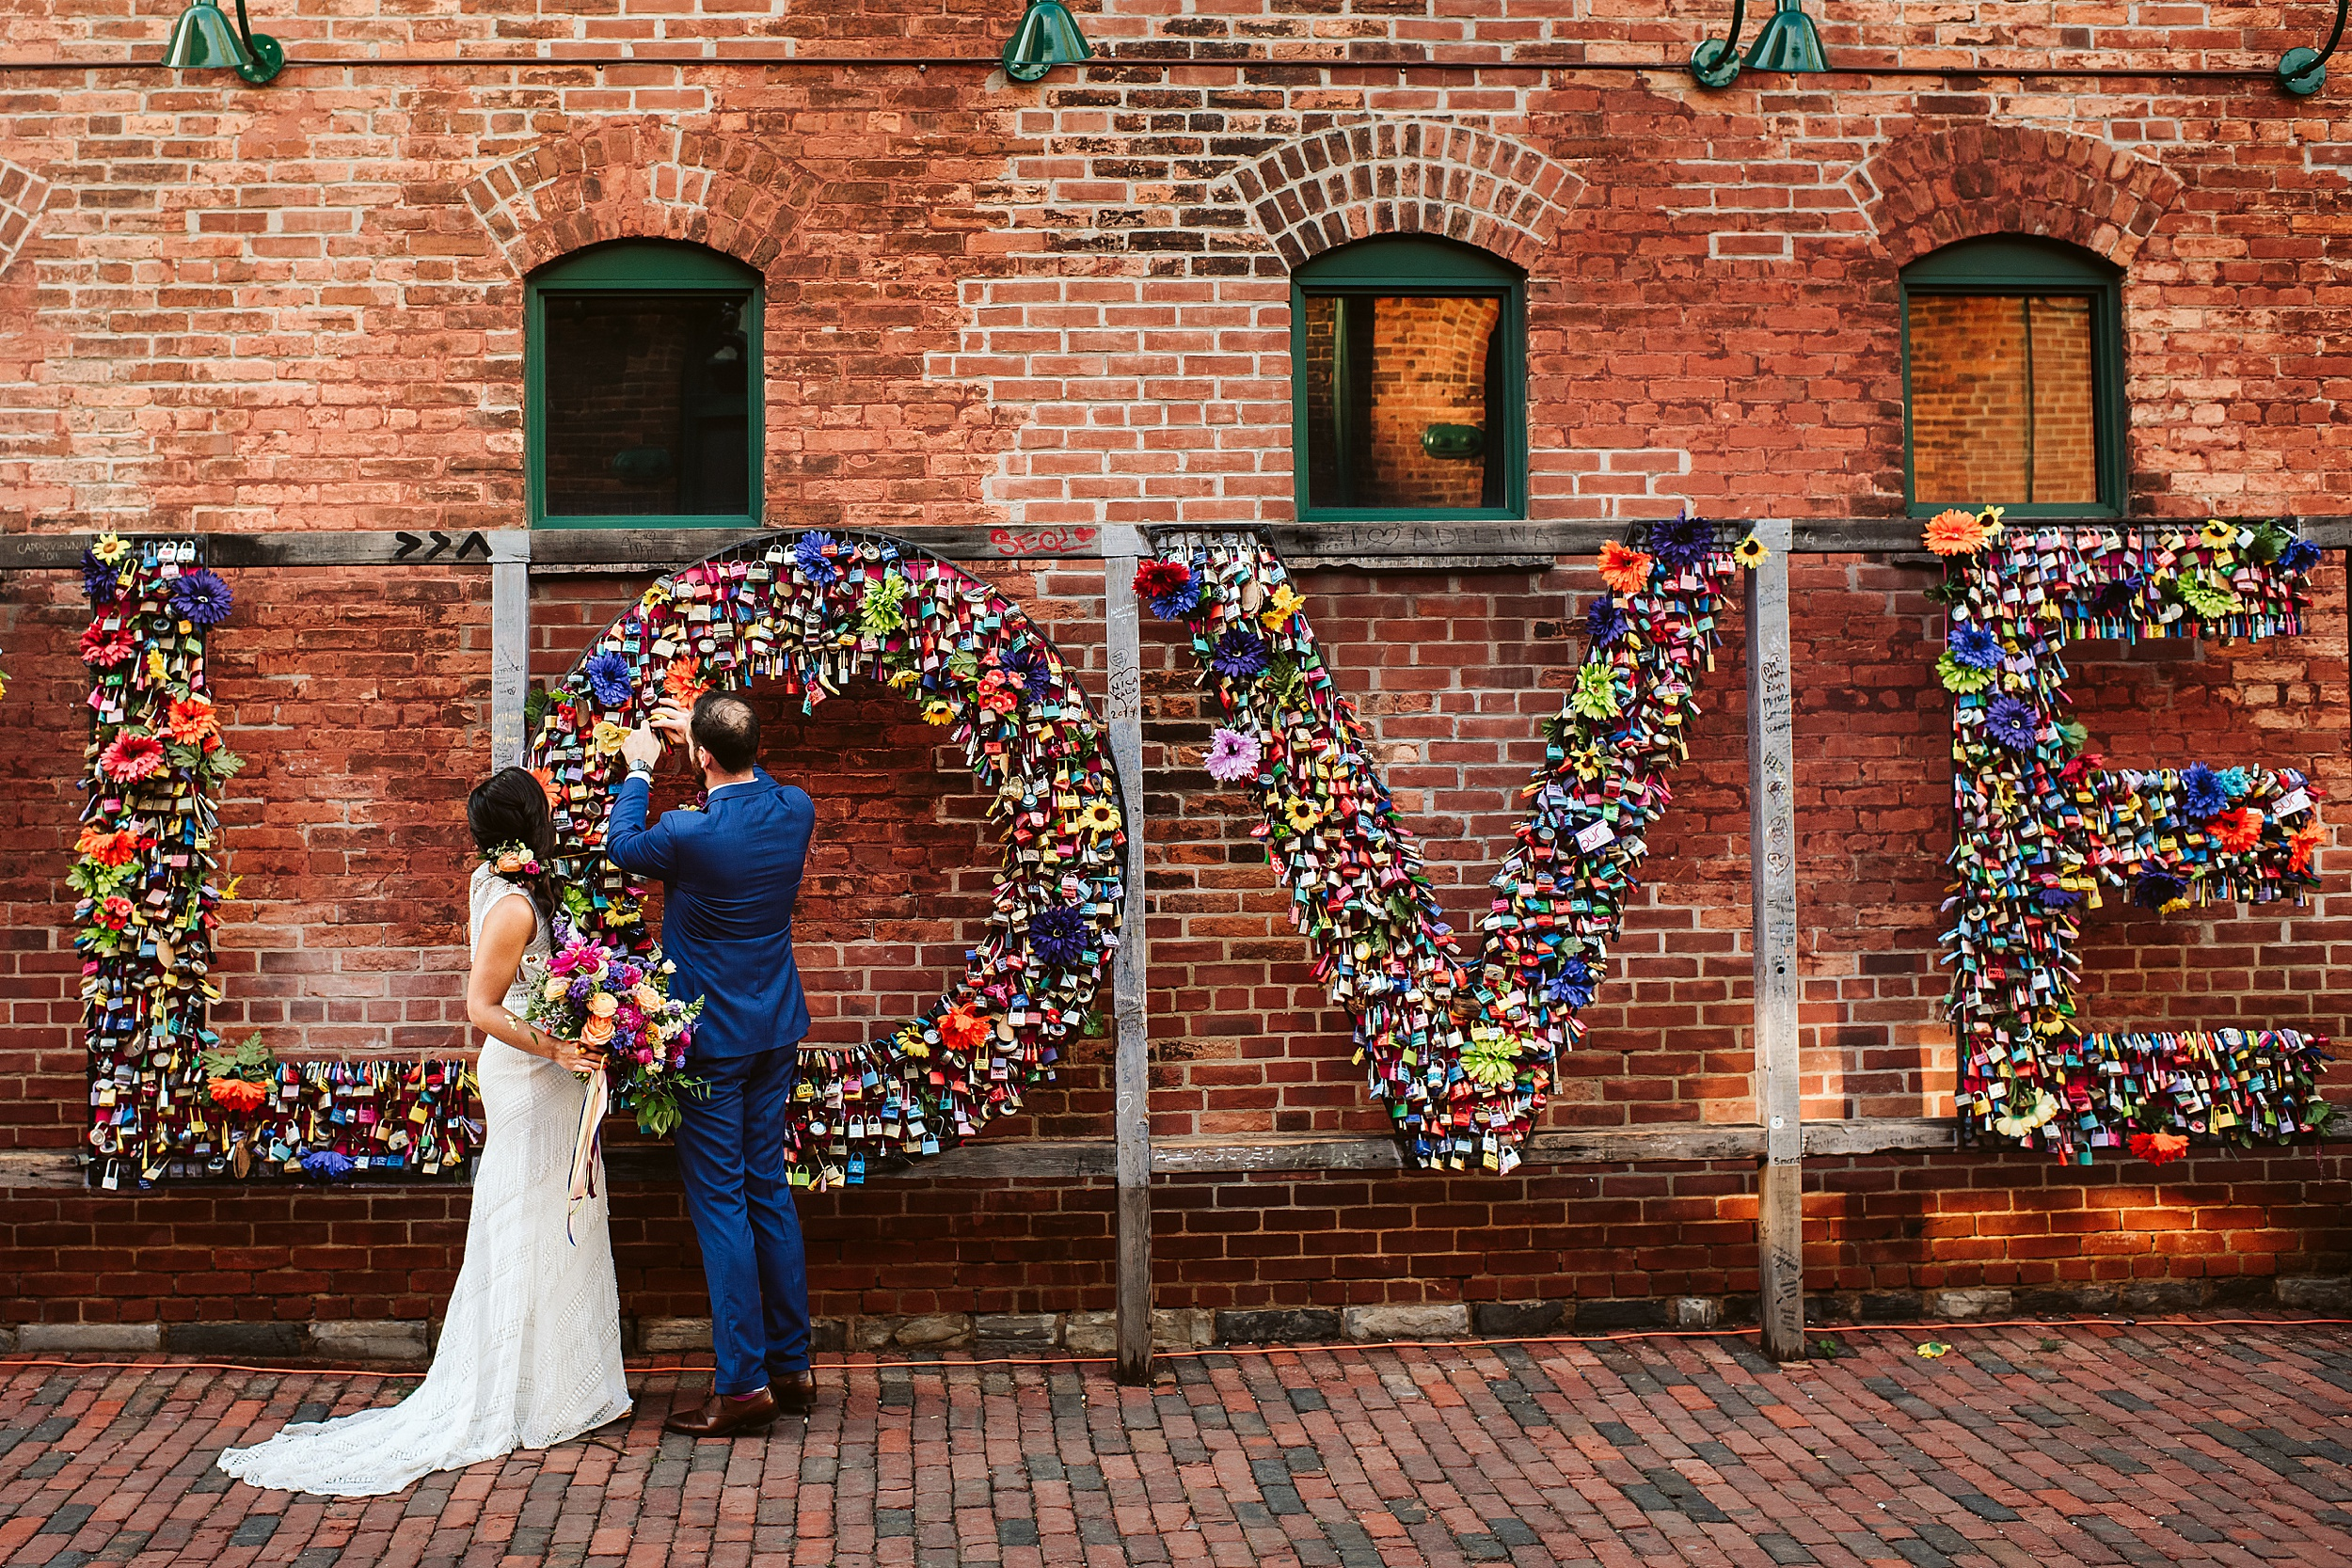 Airship-37-Berkeley-Events-Distillery-District-Wedding-Toronto-Wedding-Photographers_0045.jpg